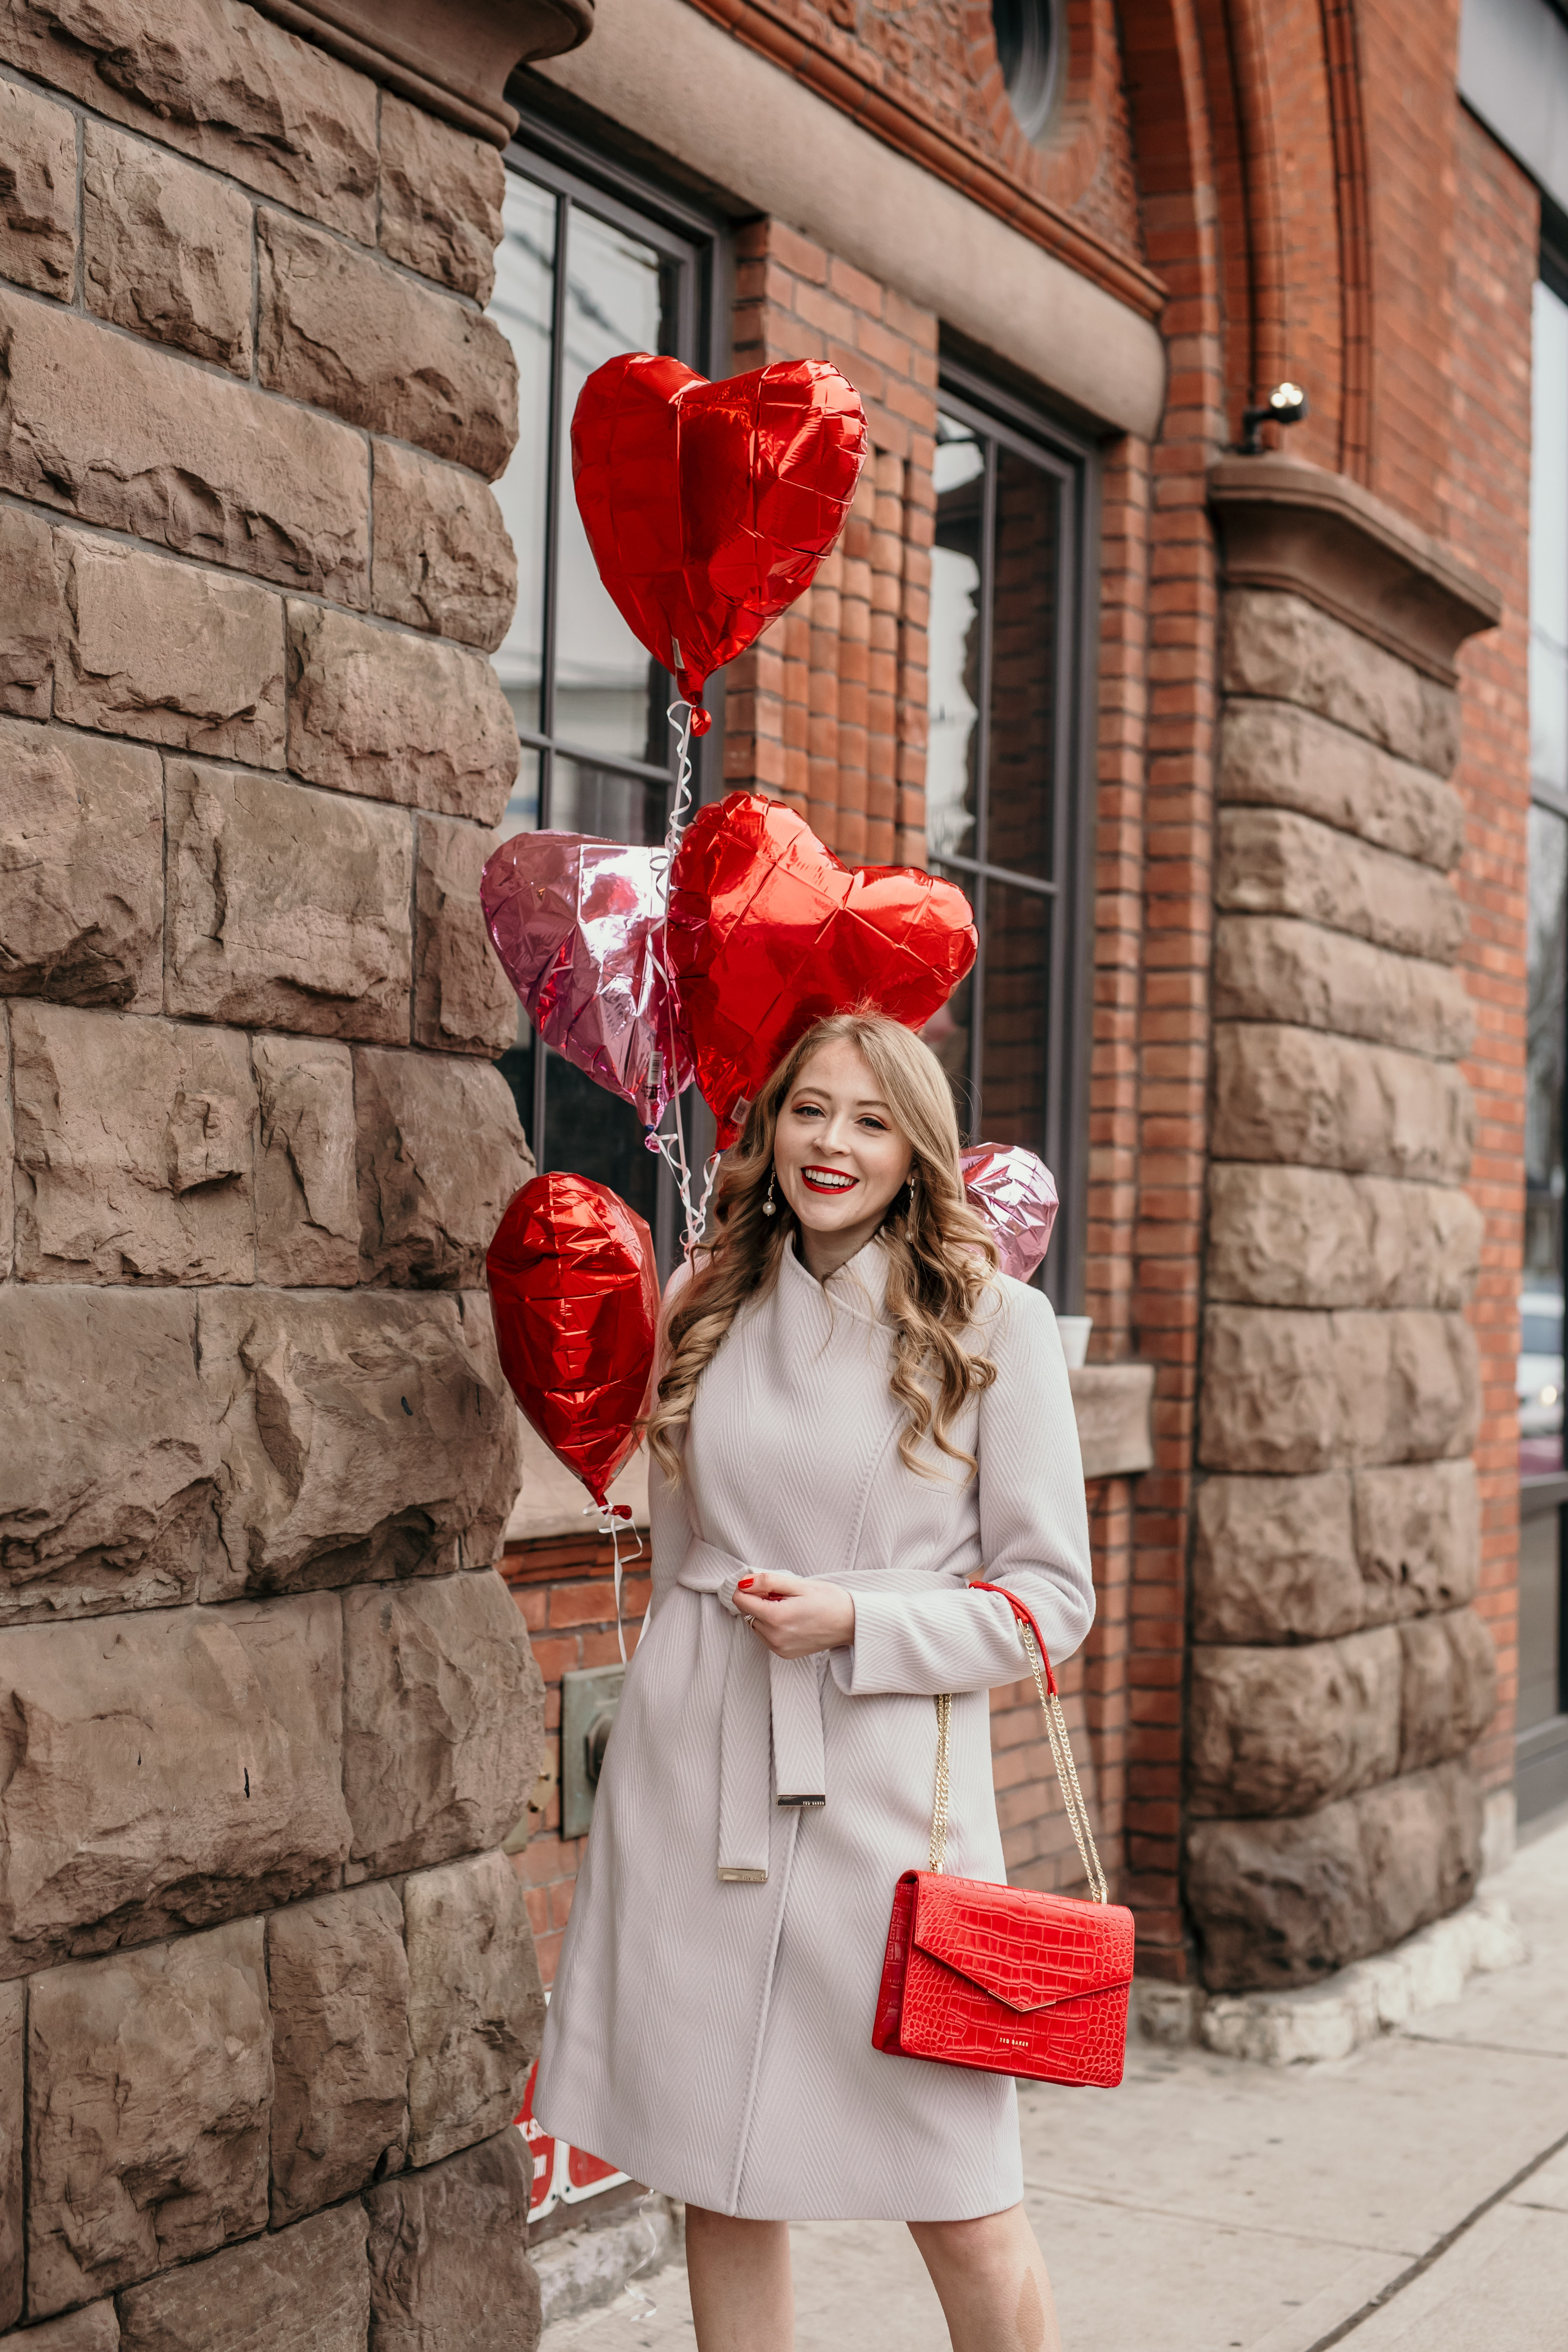 Ted Baker Beleeni Wool Wrap Coat: this chic light mauve coat is so elegant and feminine. Paired with a red croc embossed envelope bag from Ted Baker, this look is perfect for Valentine's Day!